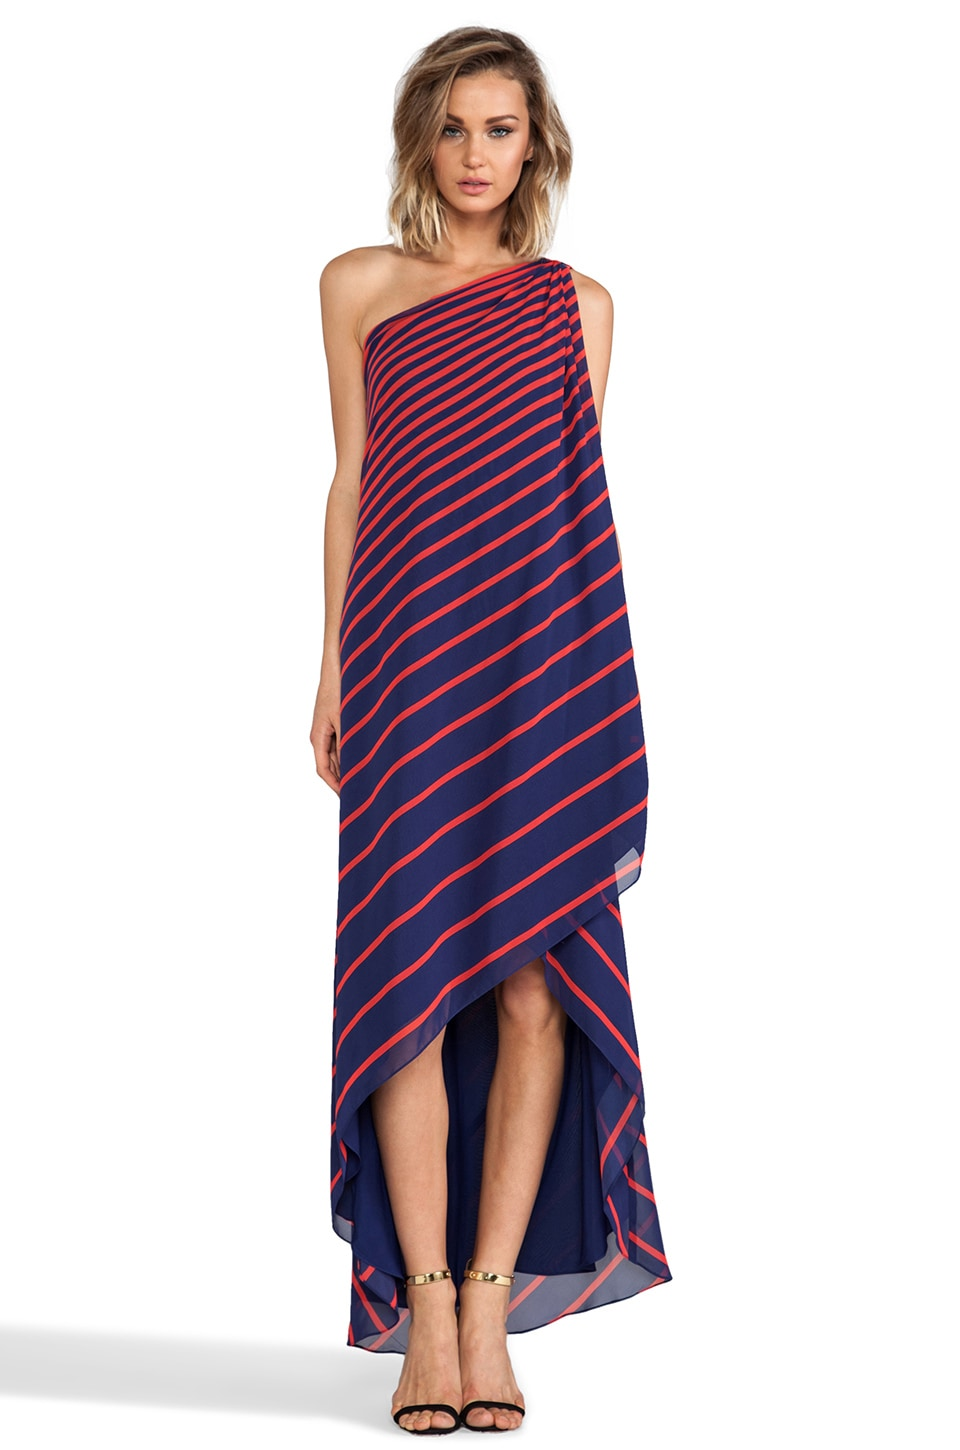 Halston Heritage One Shoulder Crepe Dress in Marine Stripe Print